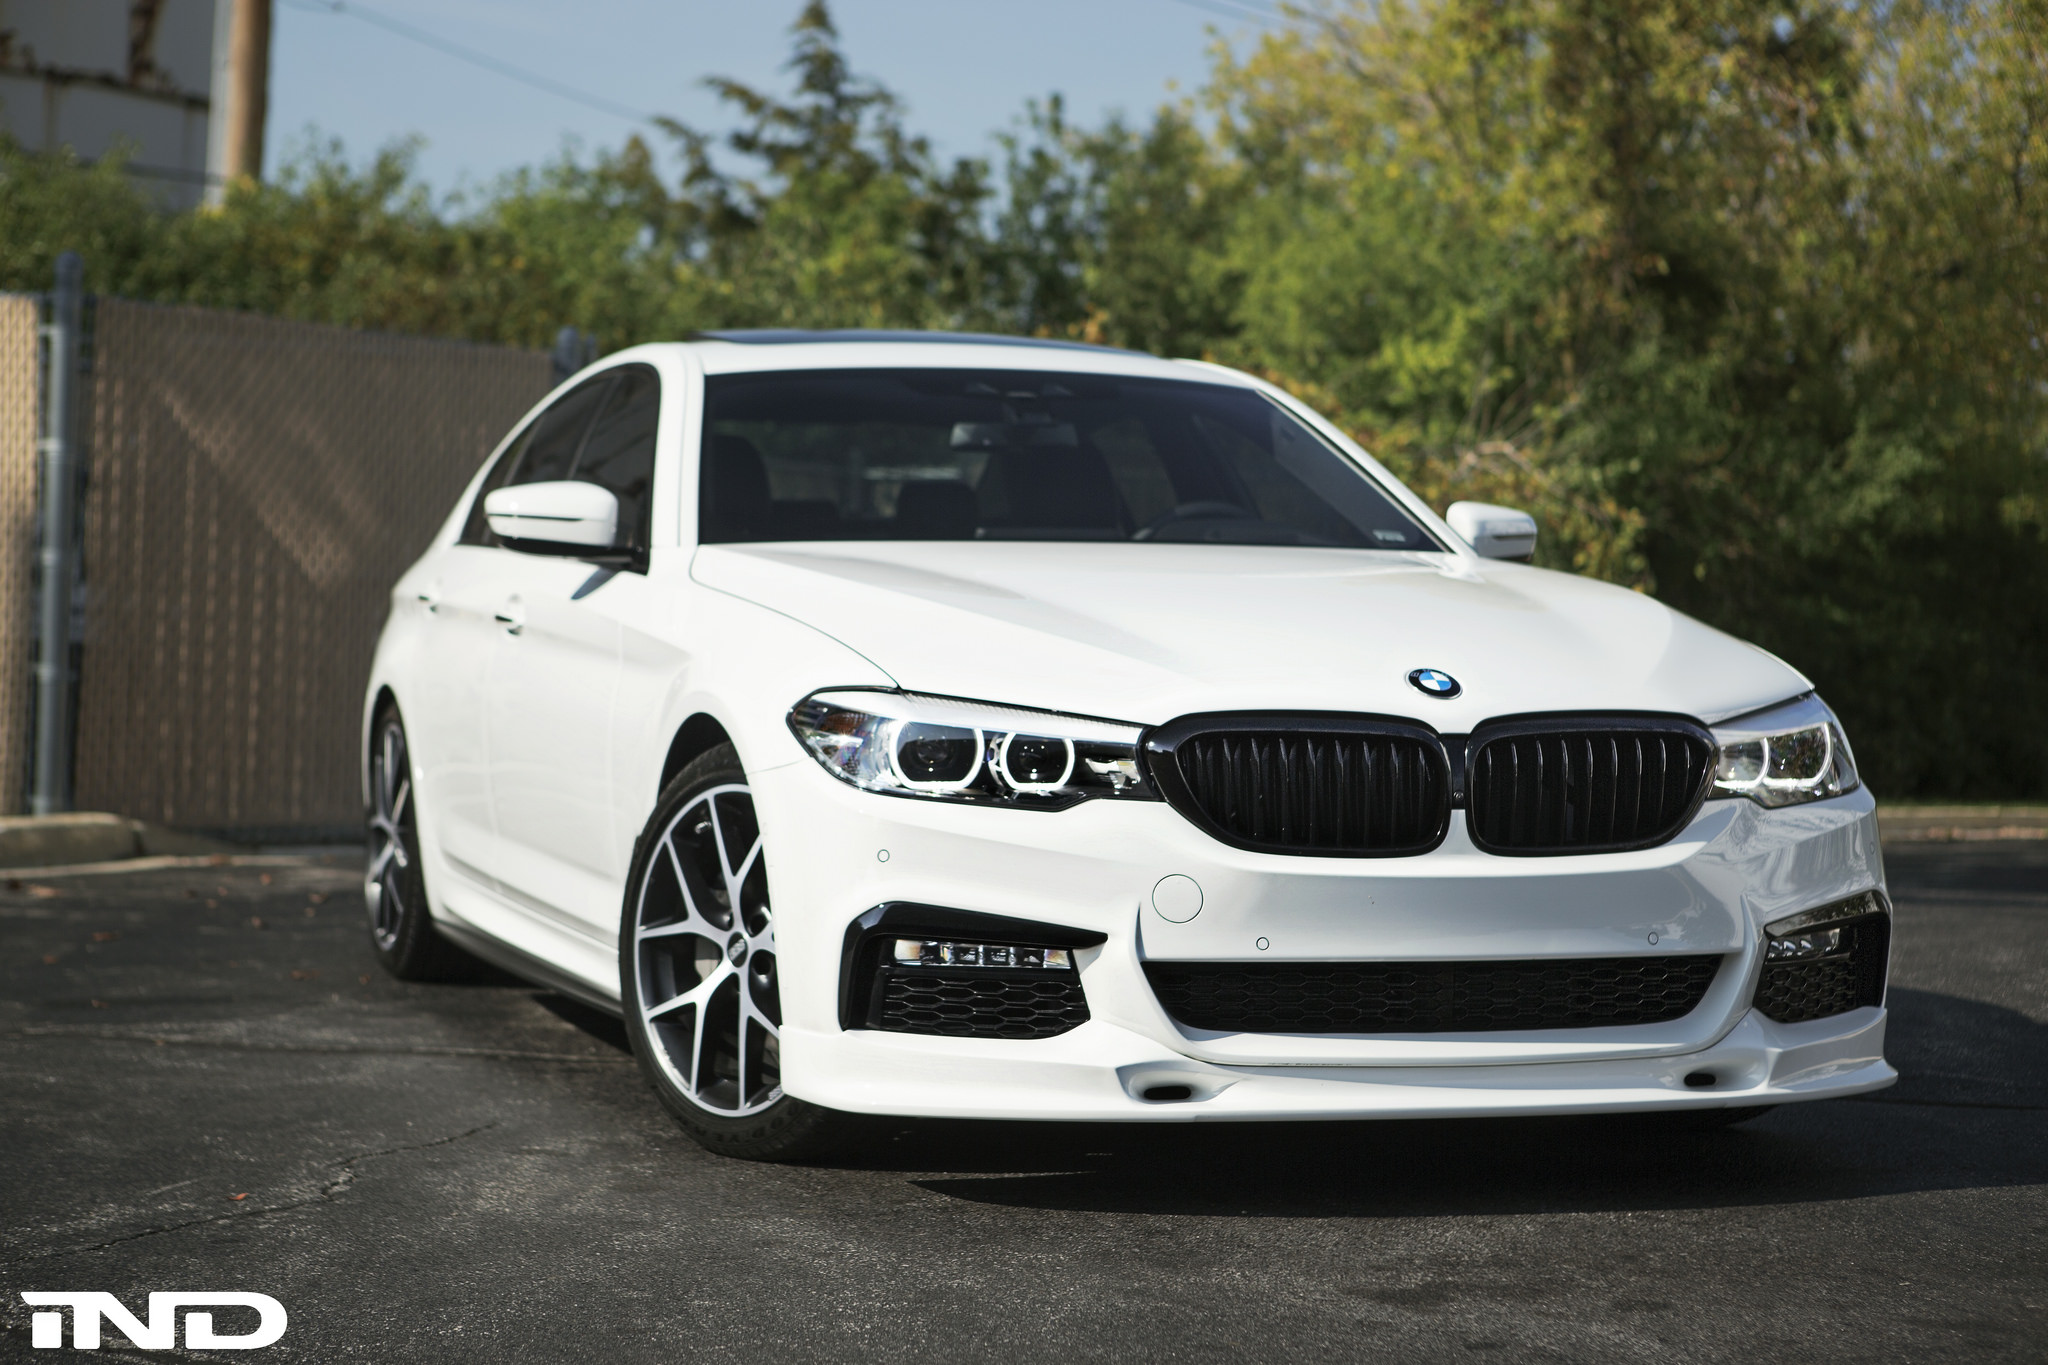 3D Design Meets BMW M Performance By IND Distribution Image 1